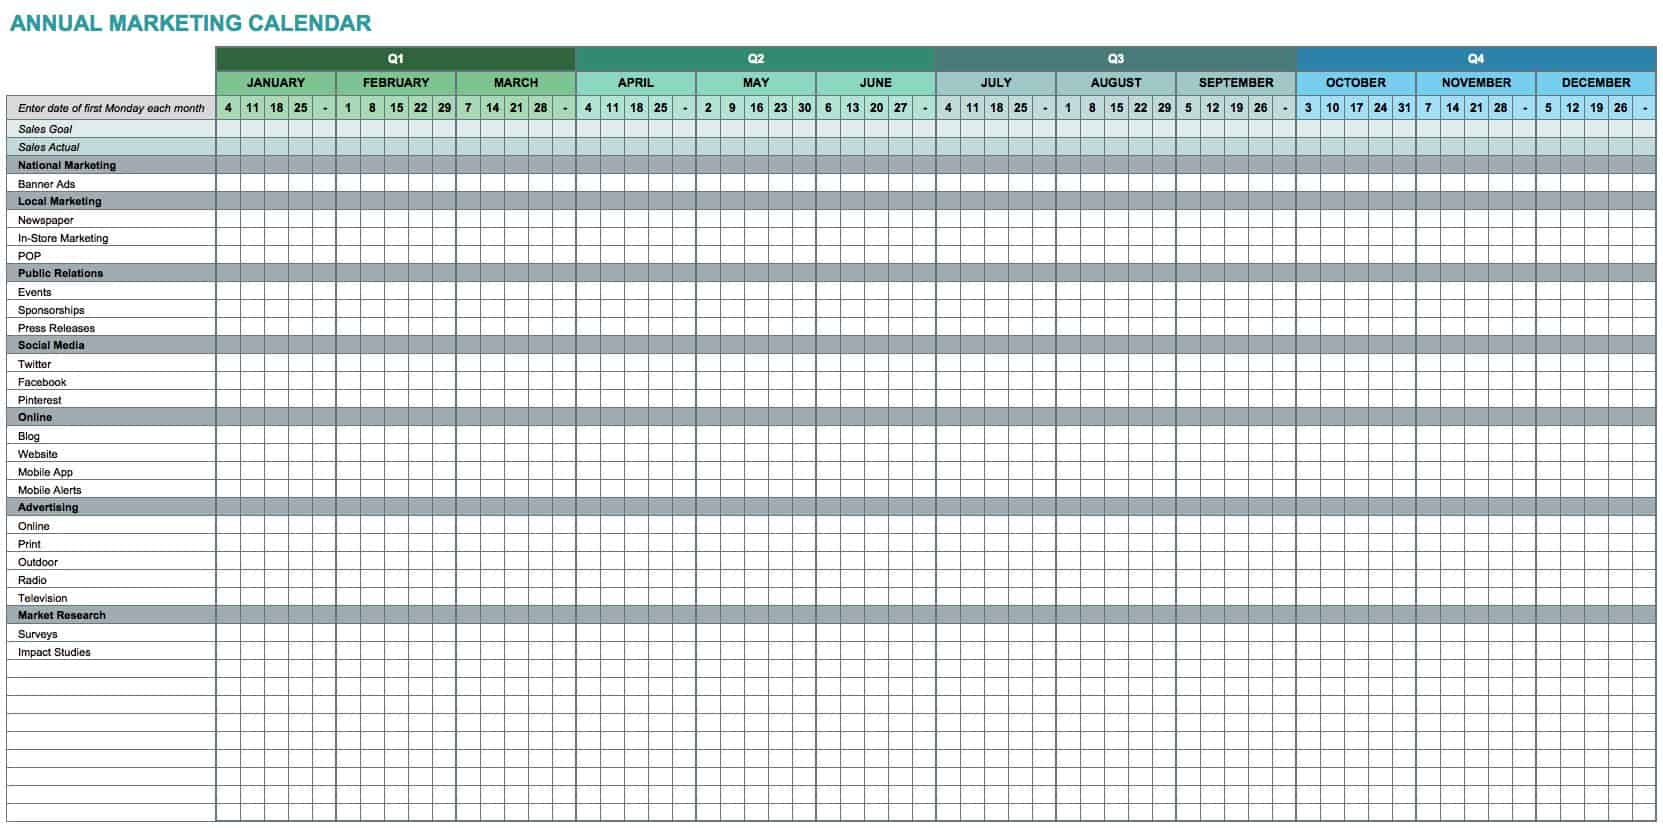 Free Marketing Calendar Templates For Excel Smartsheet - Promotional calendar template